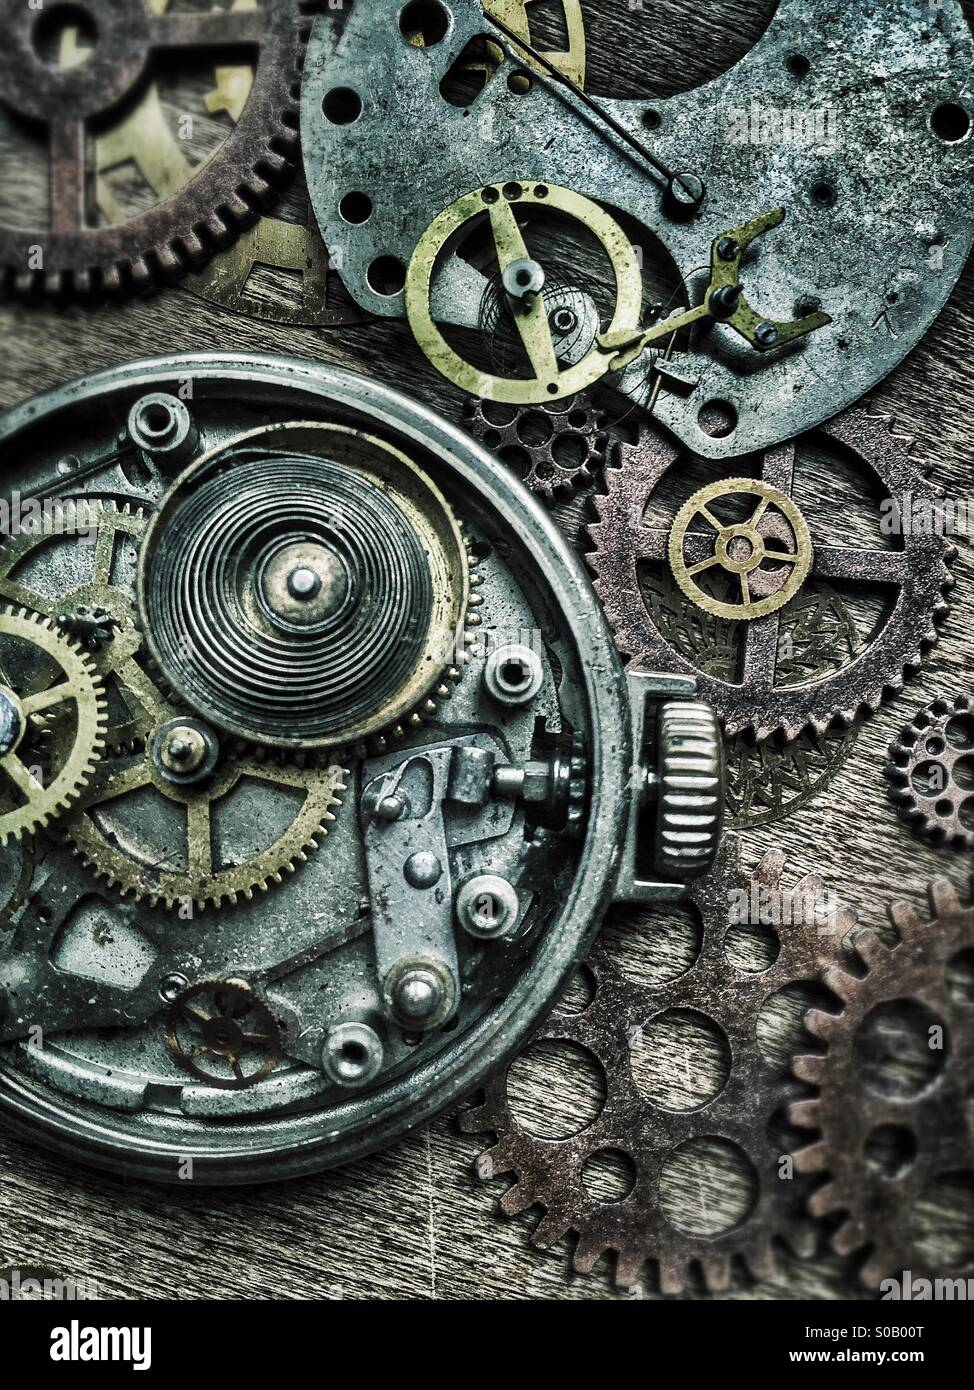 Old pocket watches and gears. - Stock Image